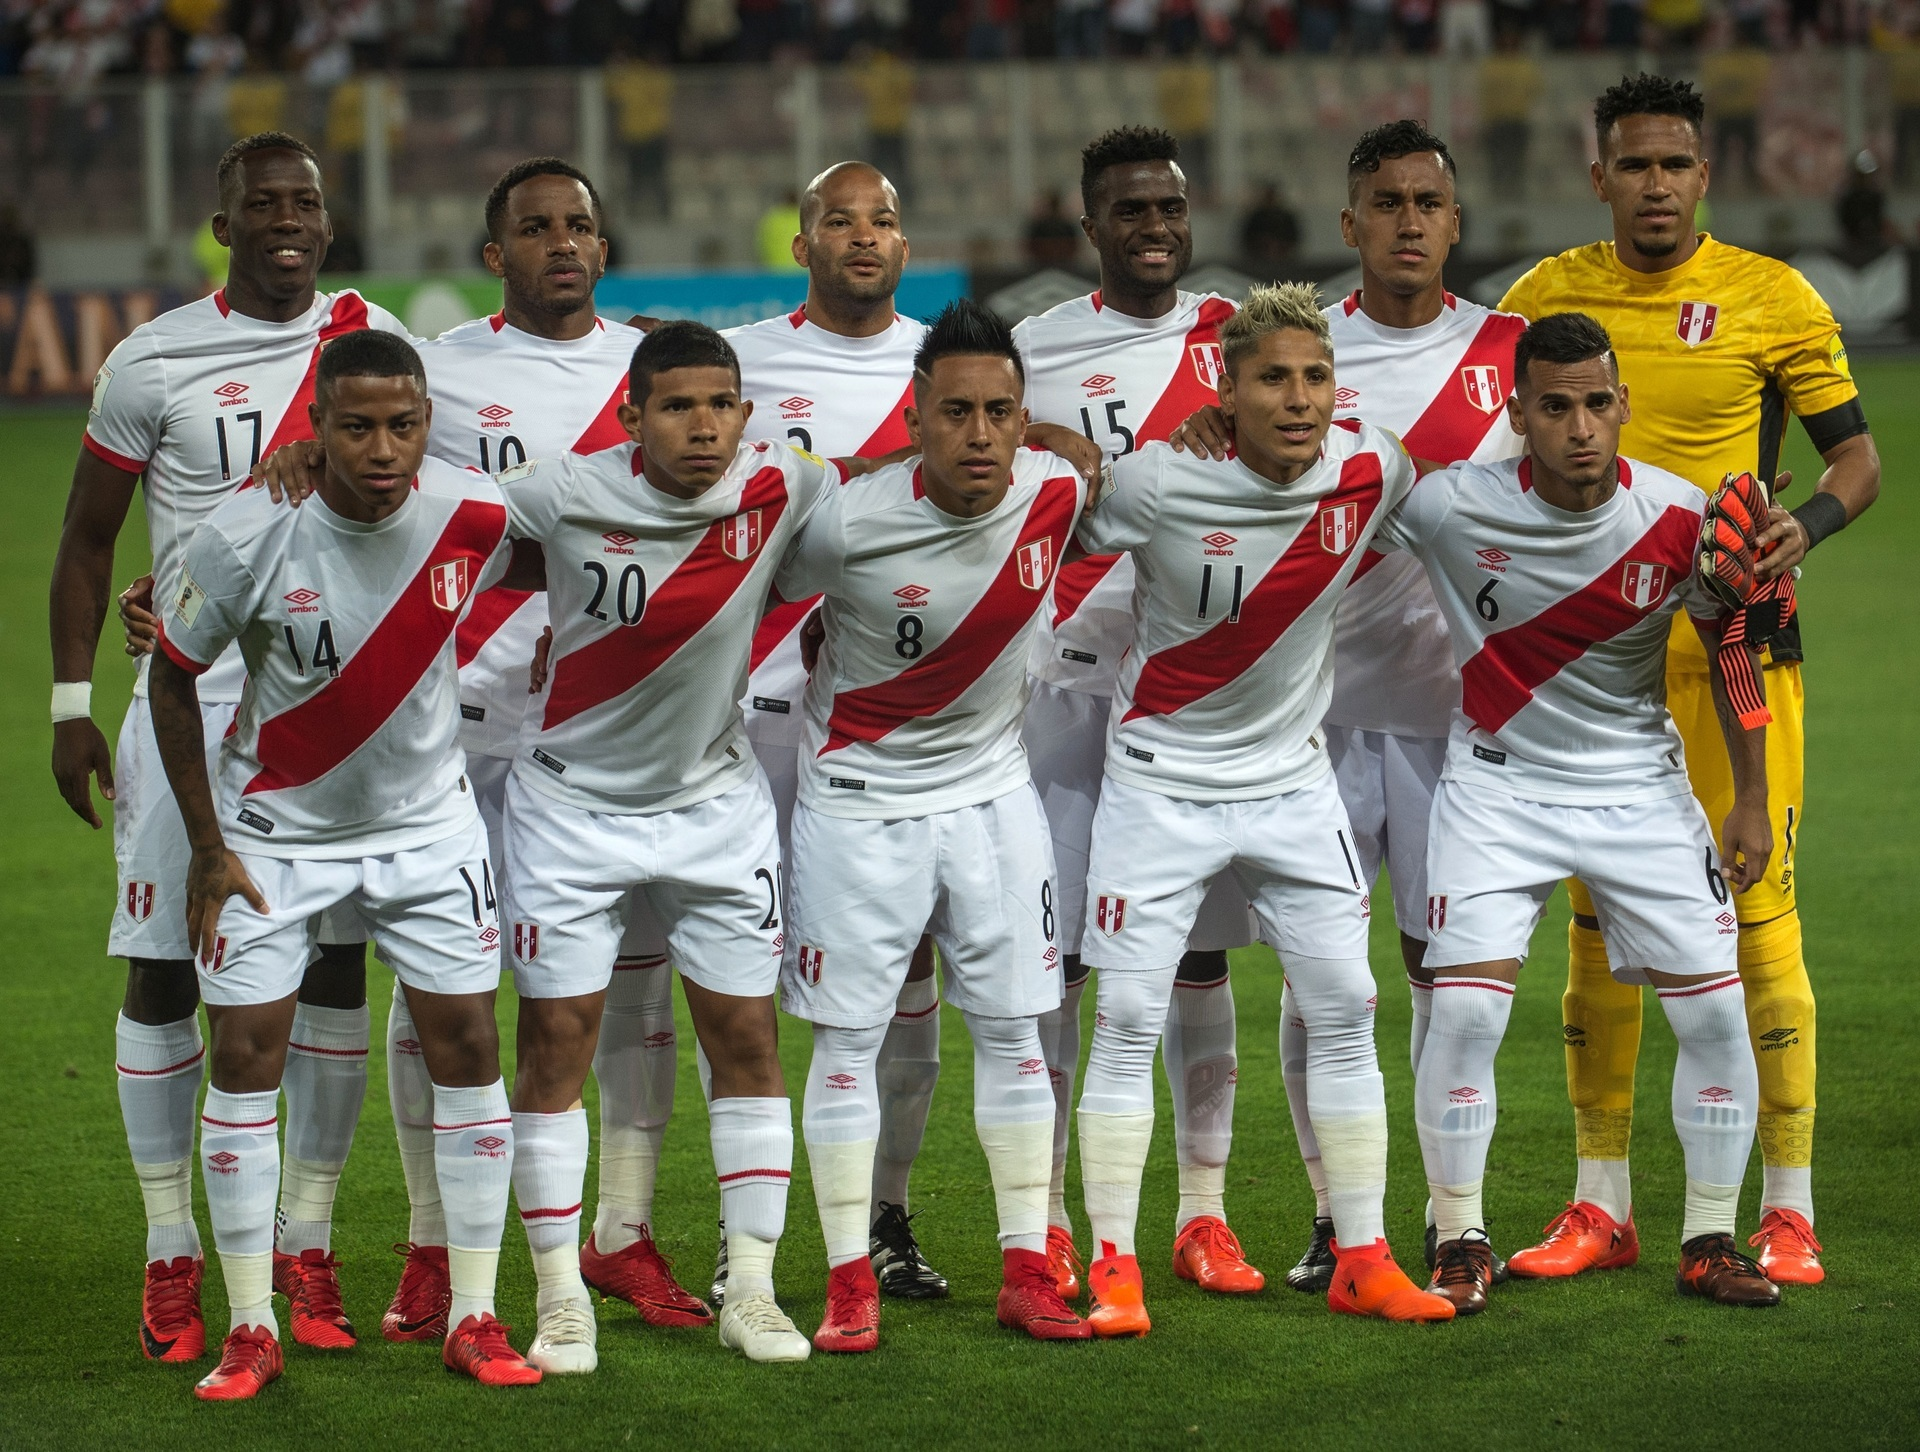 Peru-2015-16-umbro-home-kit-white-white-white-line-up.jpg